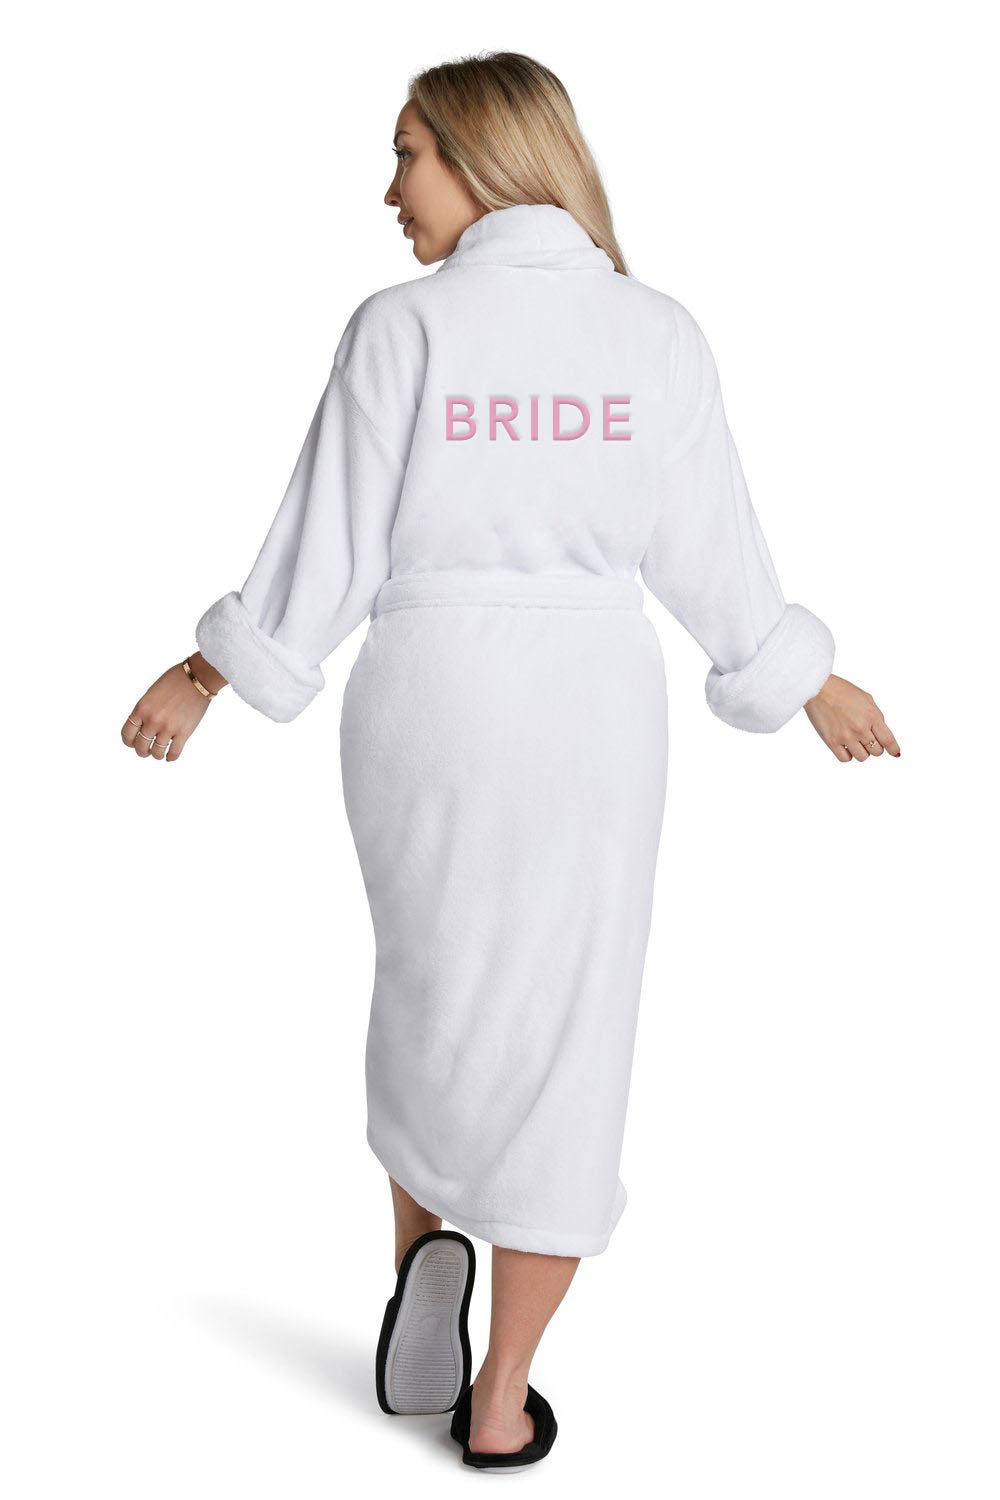 LUXE PLUSH ROBE - Bride